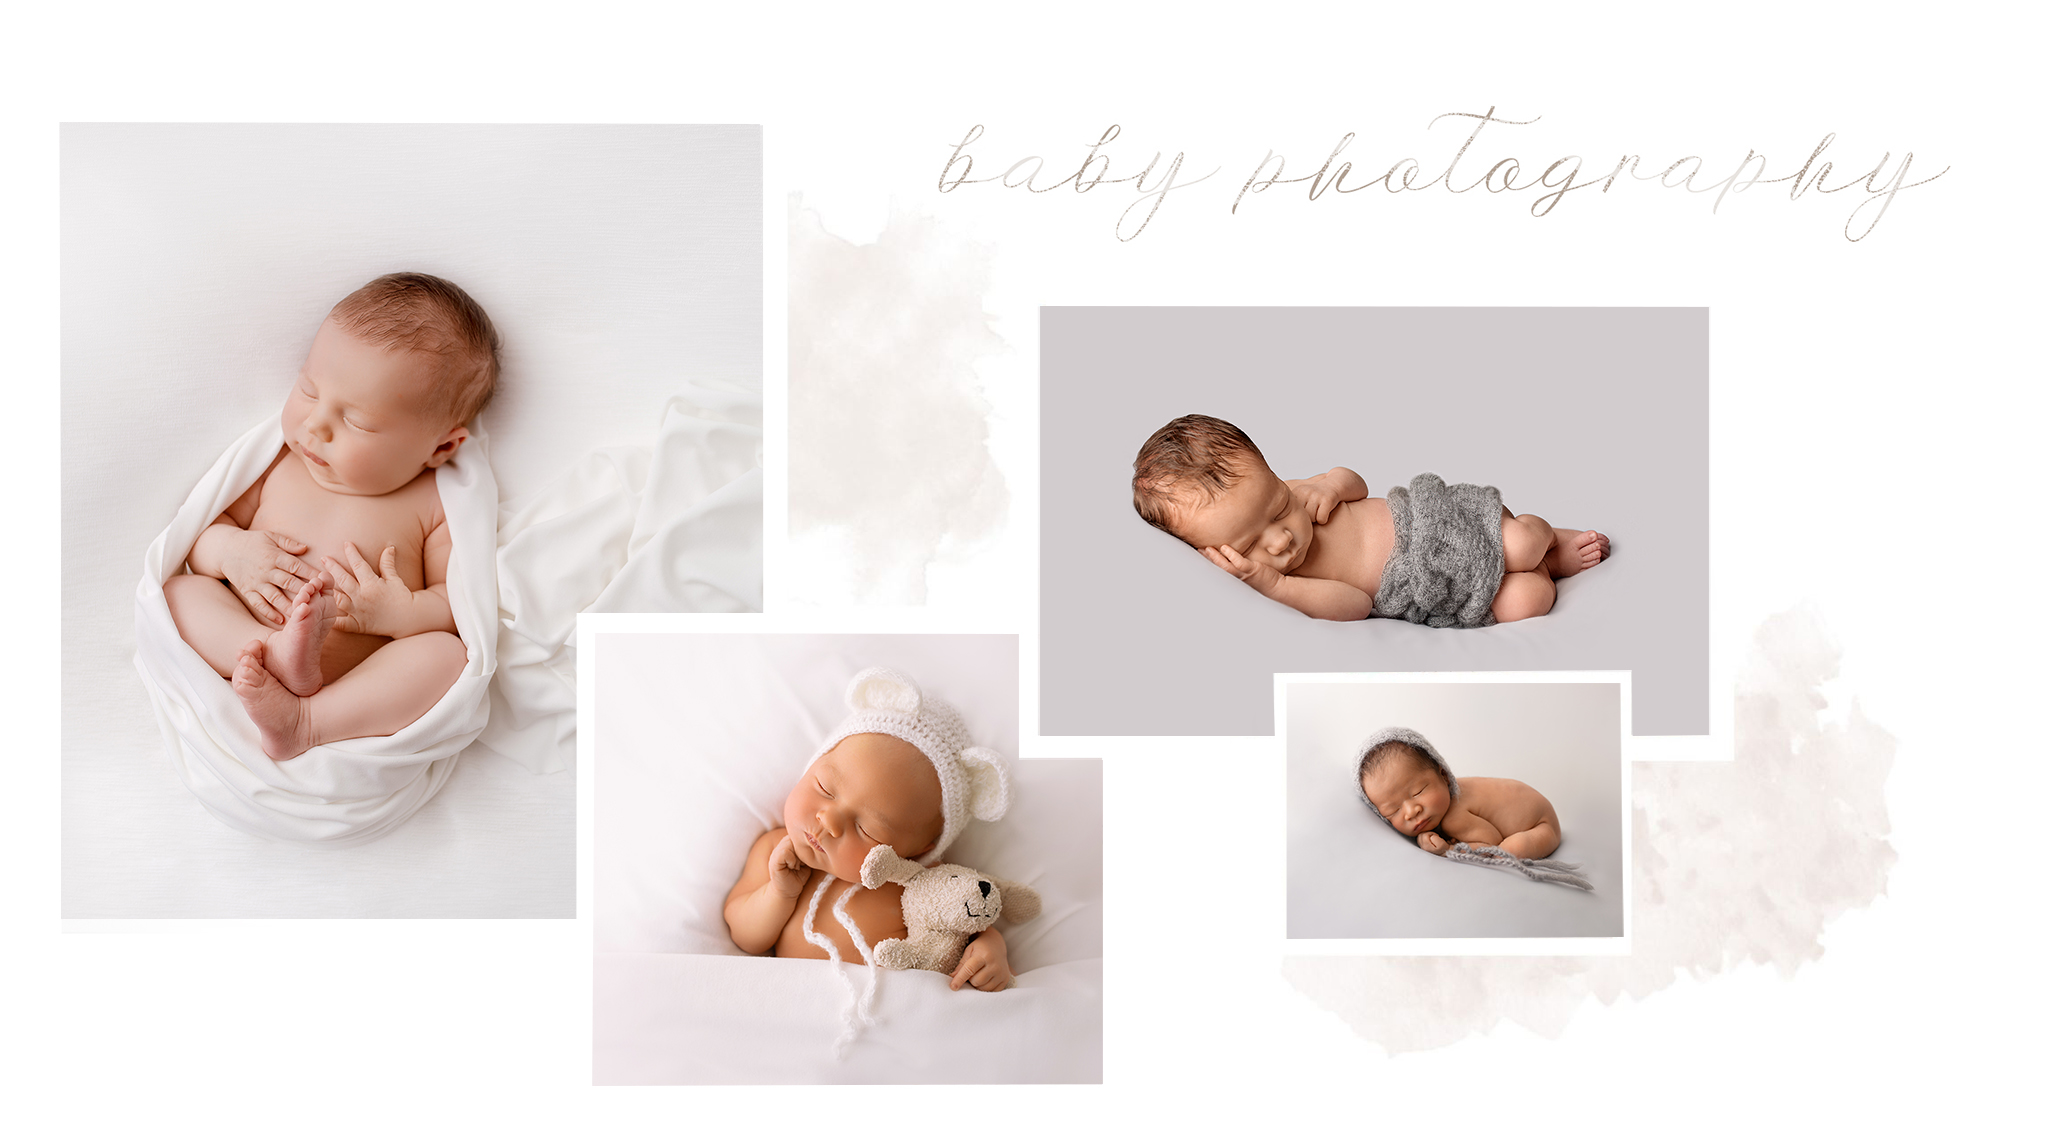 beautifullittlemoments-baby-photography-homepage-image5